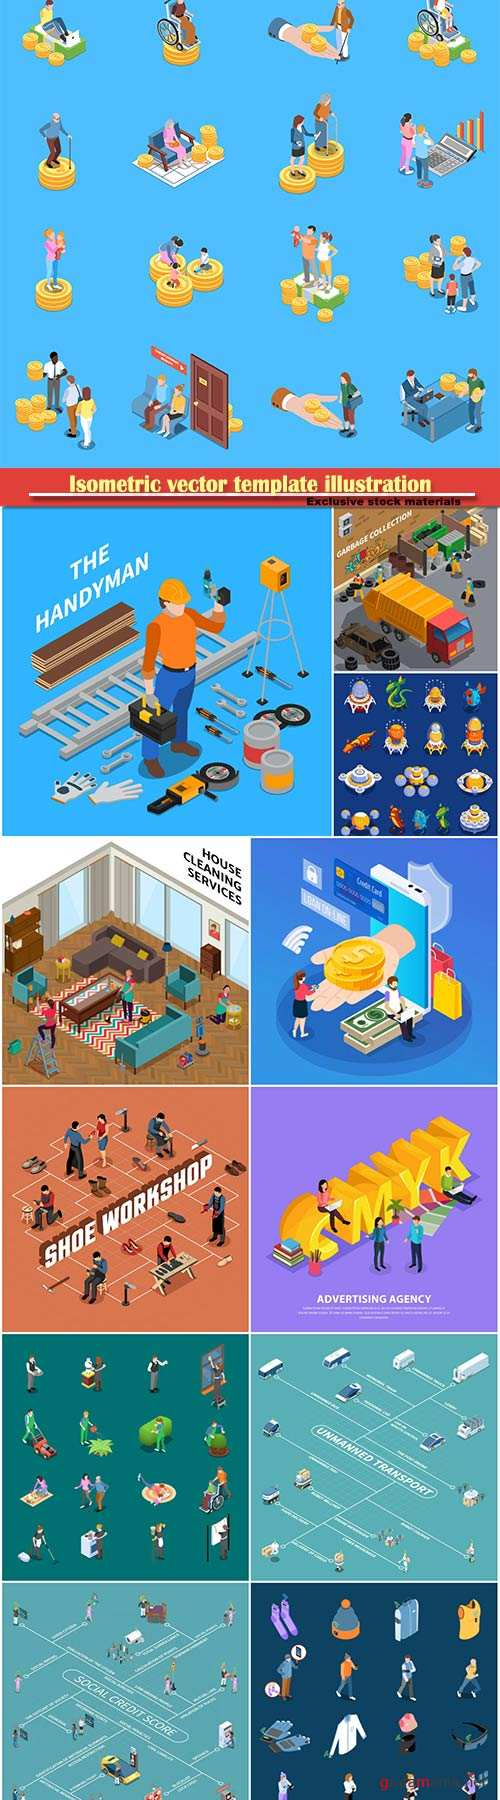 Isometric vector template illustration # 2